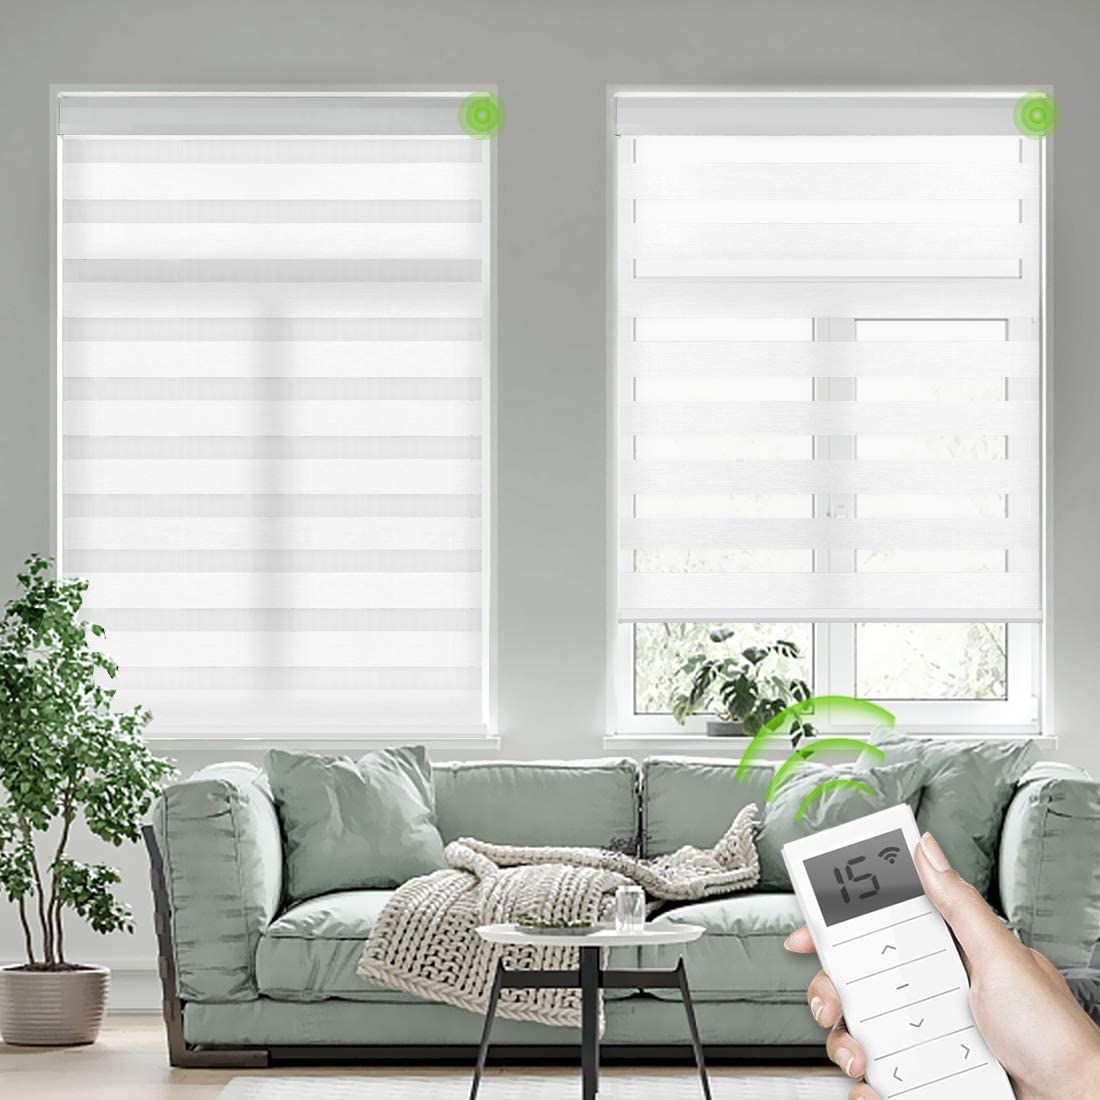 Yoolax Motorized Zebra Blinds Capable with Alexa Siri Rechargeable Battery Motor Dual Layer Sheer and Privacy Light Control Automatic Day and Night Shades (Pure White)